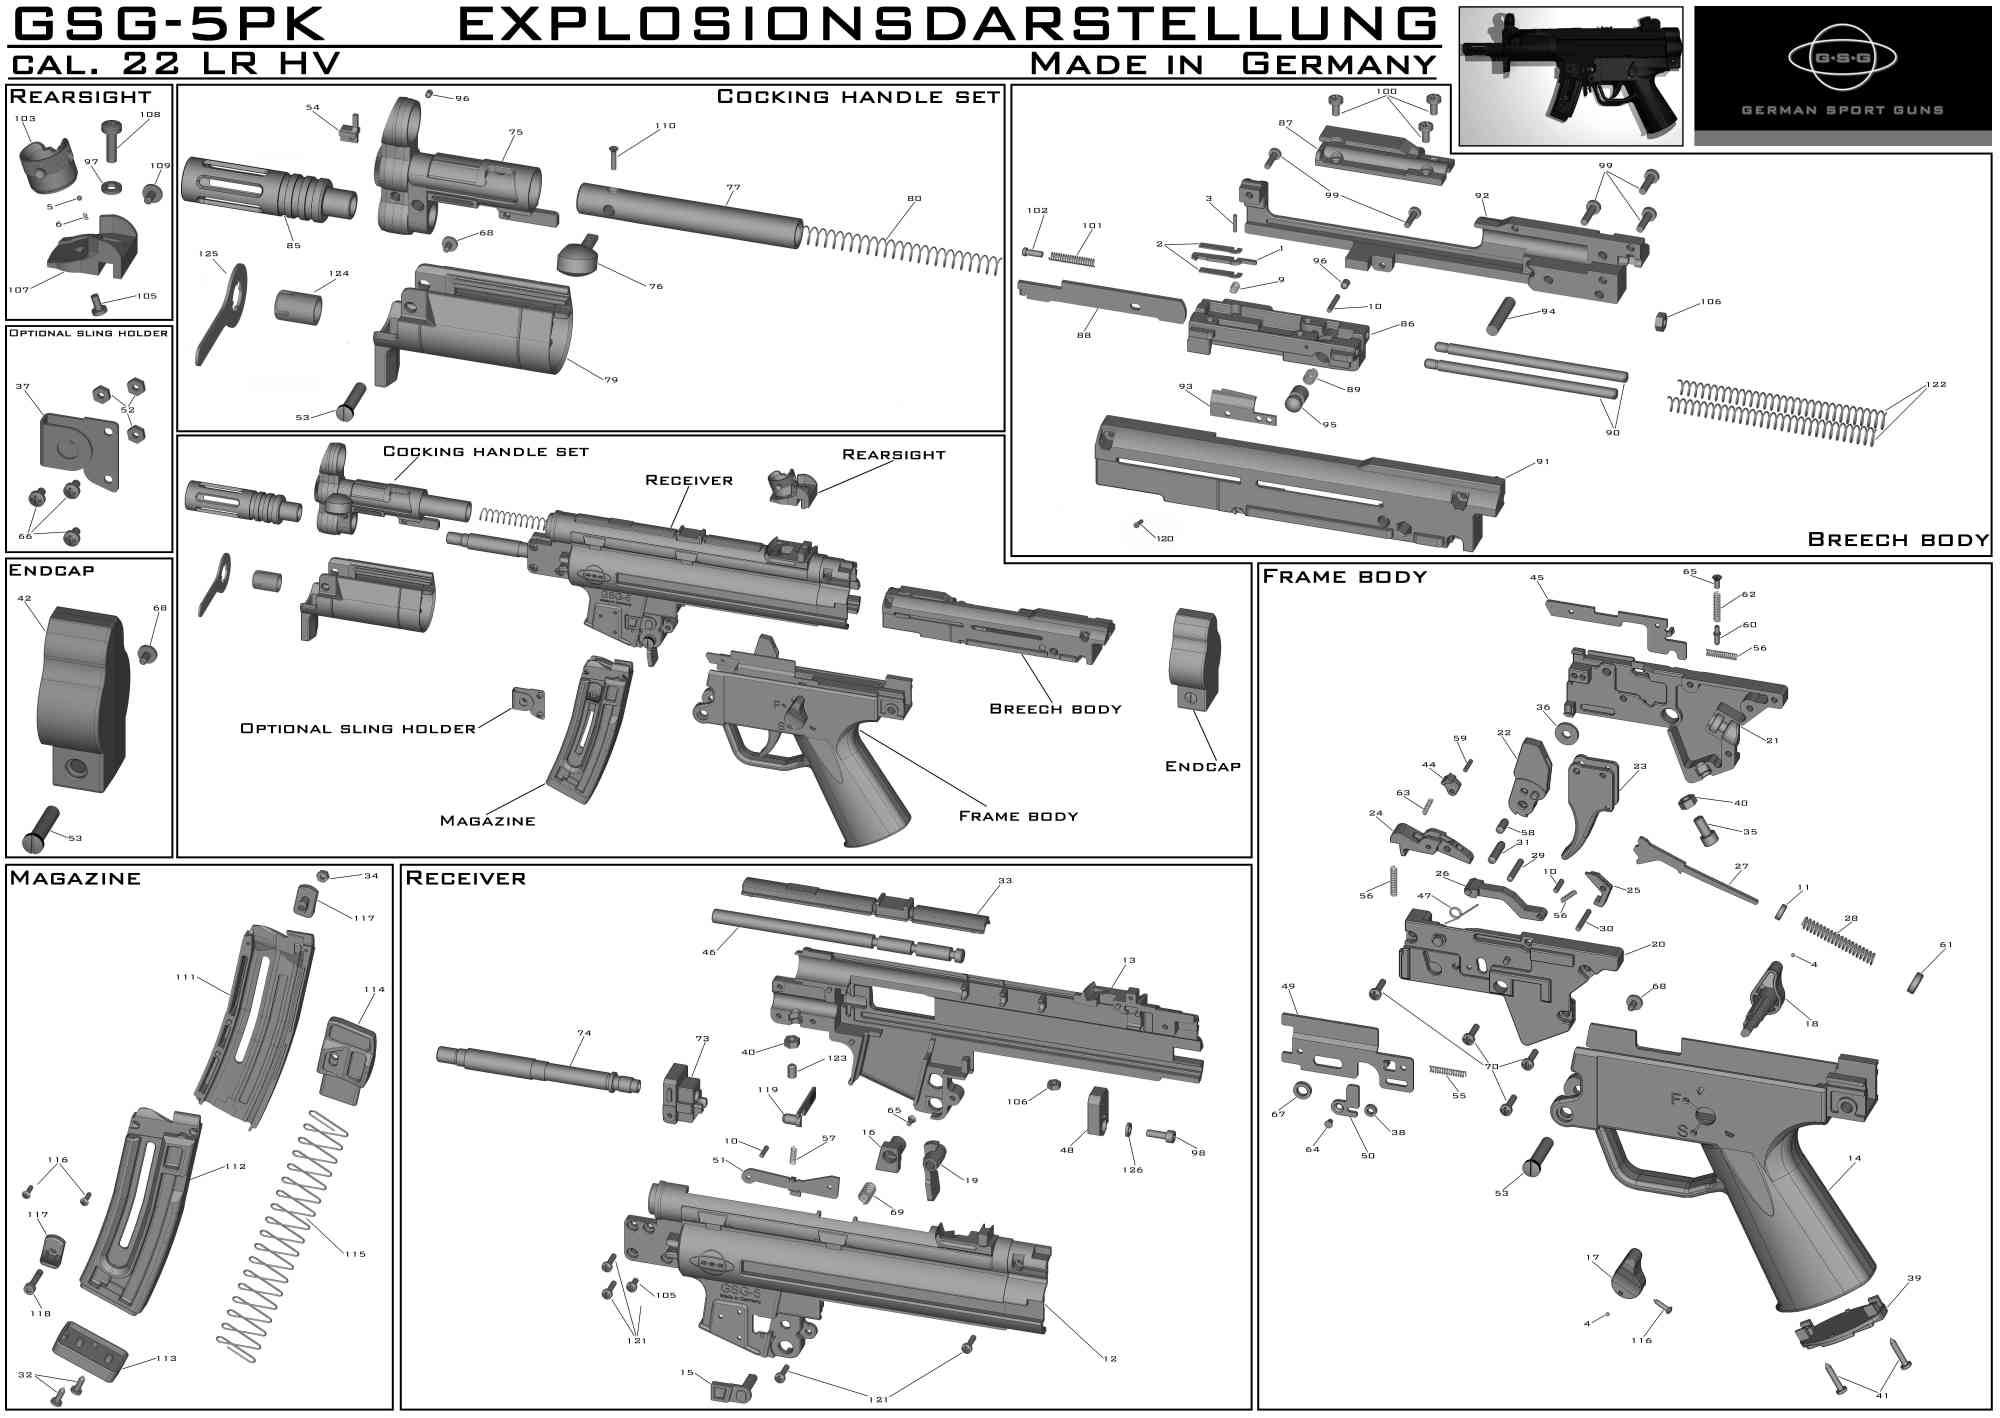 hight resolution of gsg 5pk exploded view legacy file